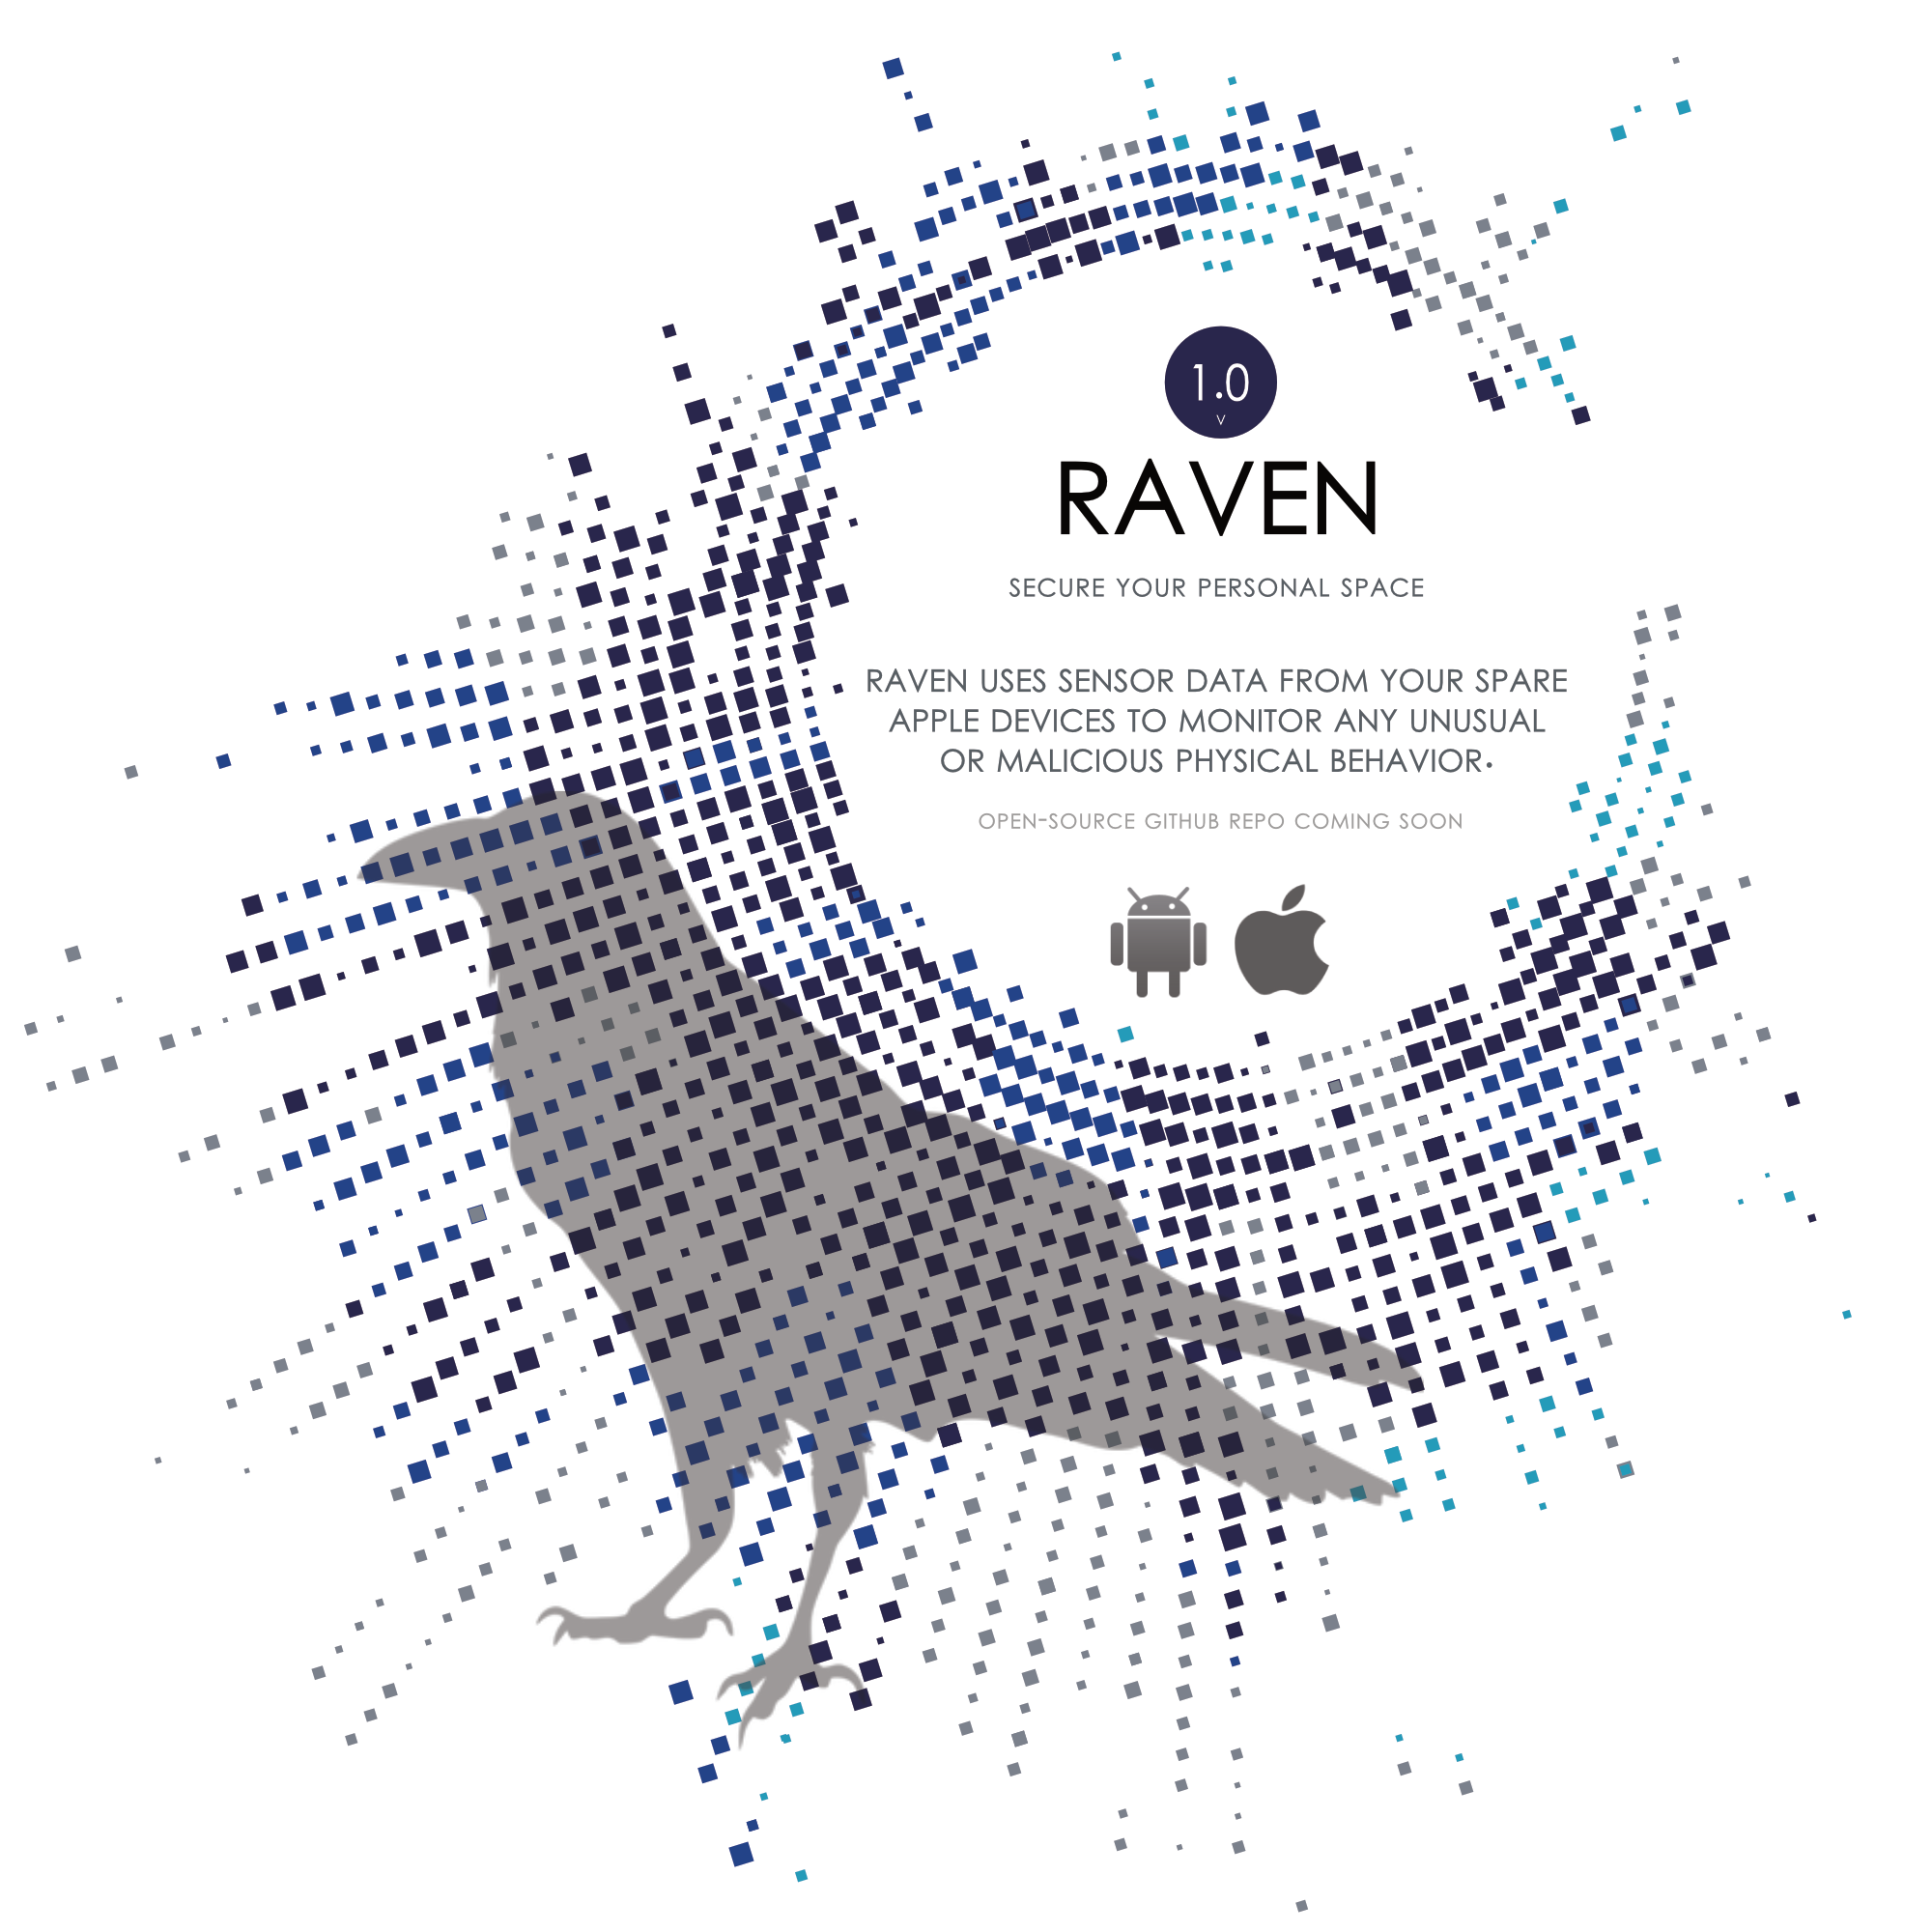 Raven security for iOS